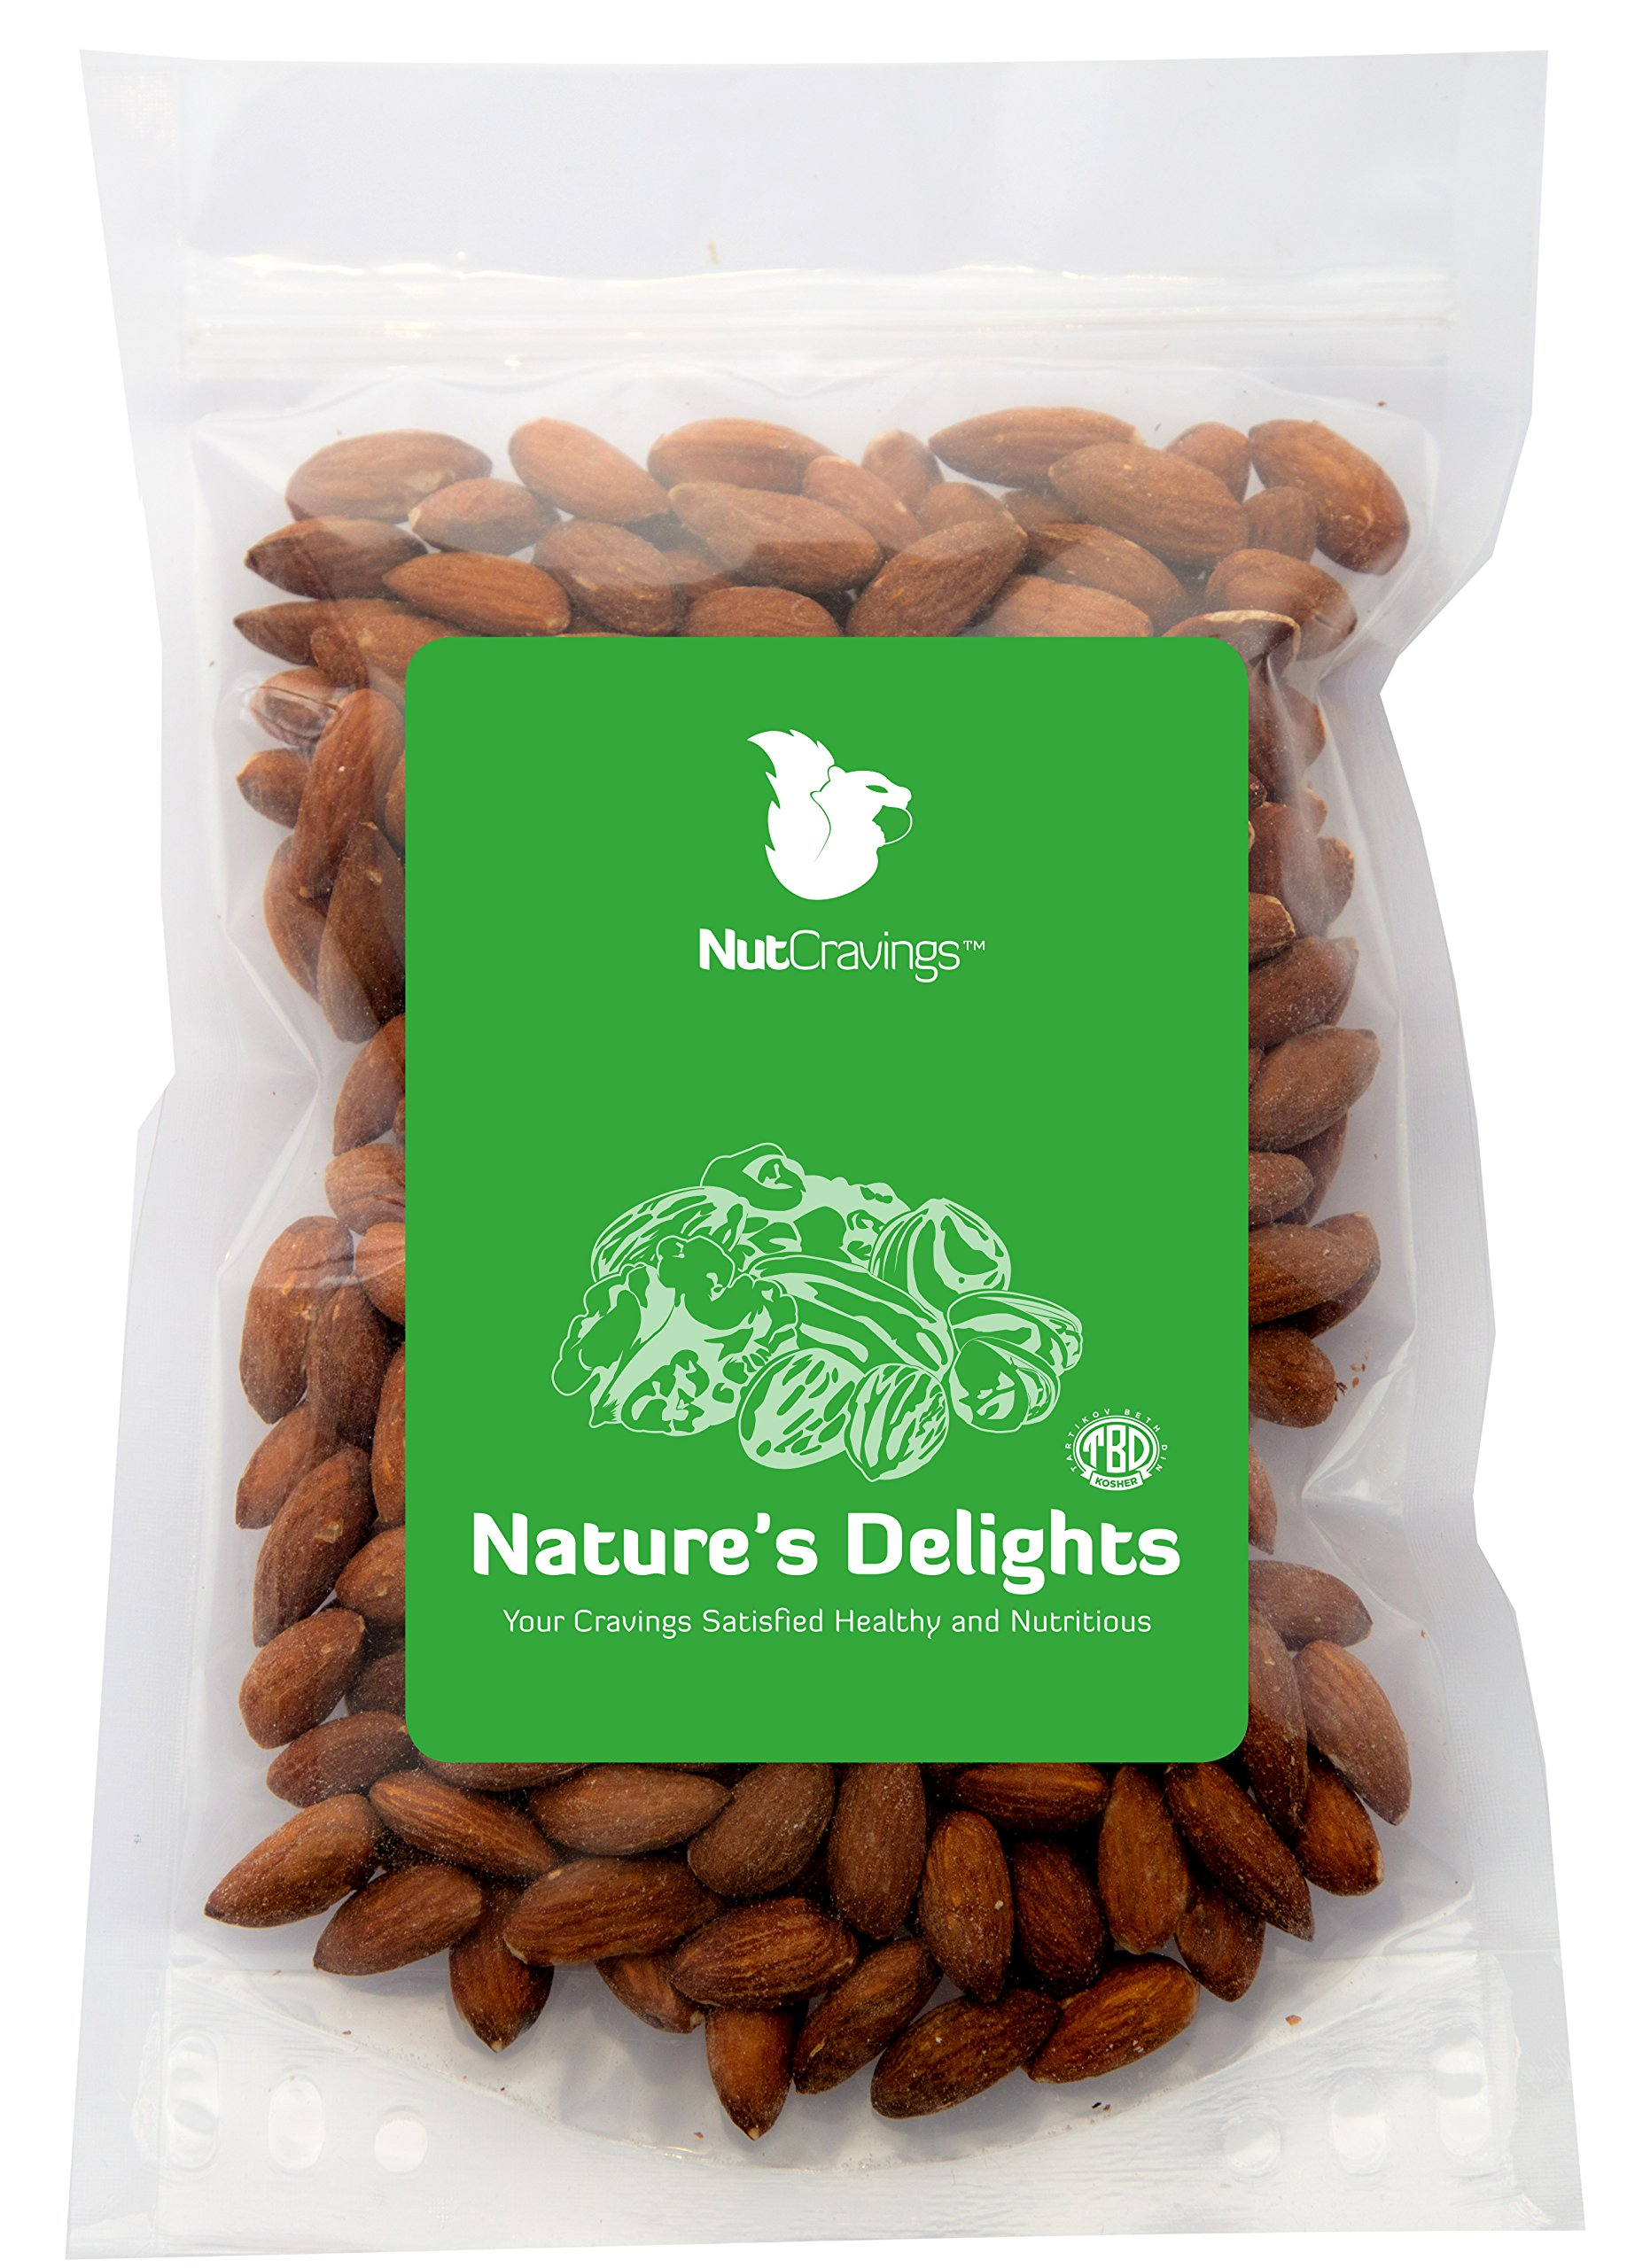 Nut Cravings Whole Almonds – 100% All Natural Shelled, Roasted & Salted Nuts – 1LB